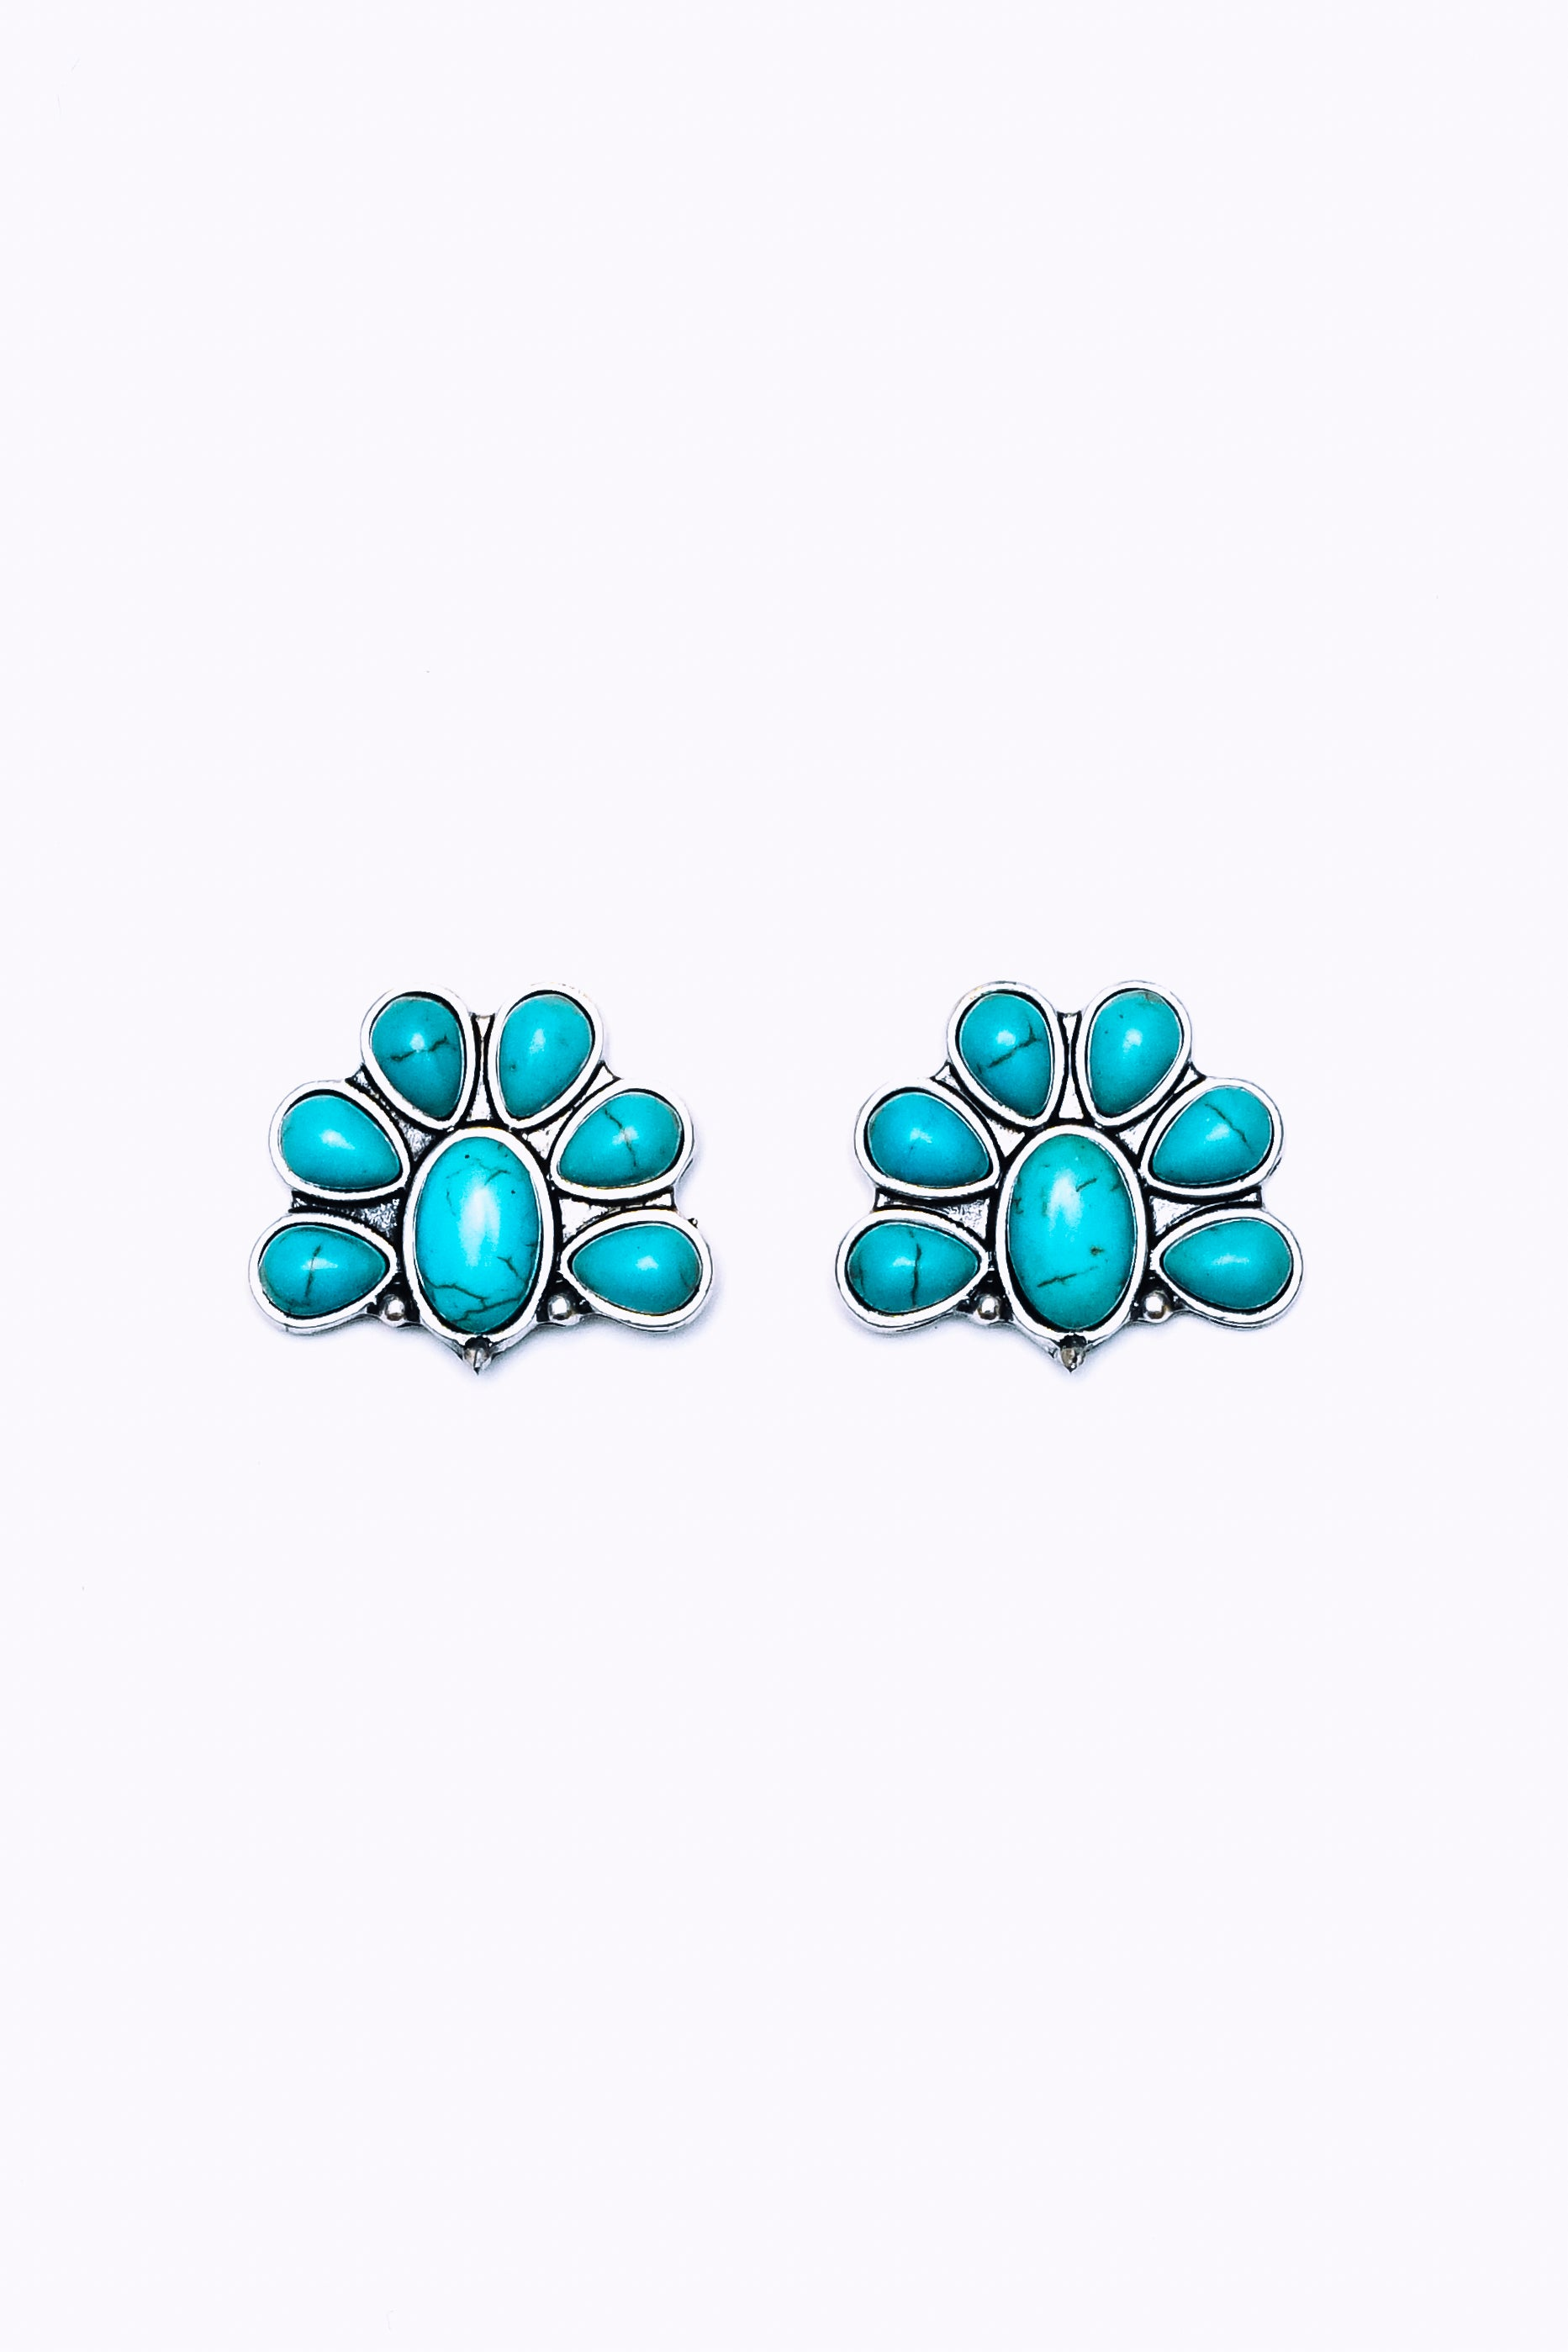 Half Flower Turquoise Post Earring